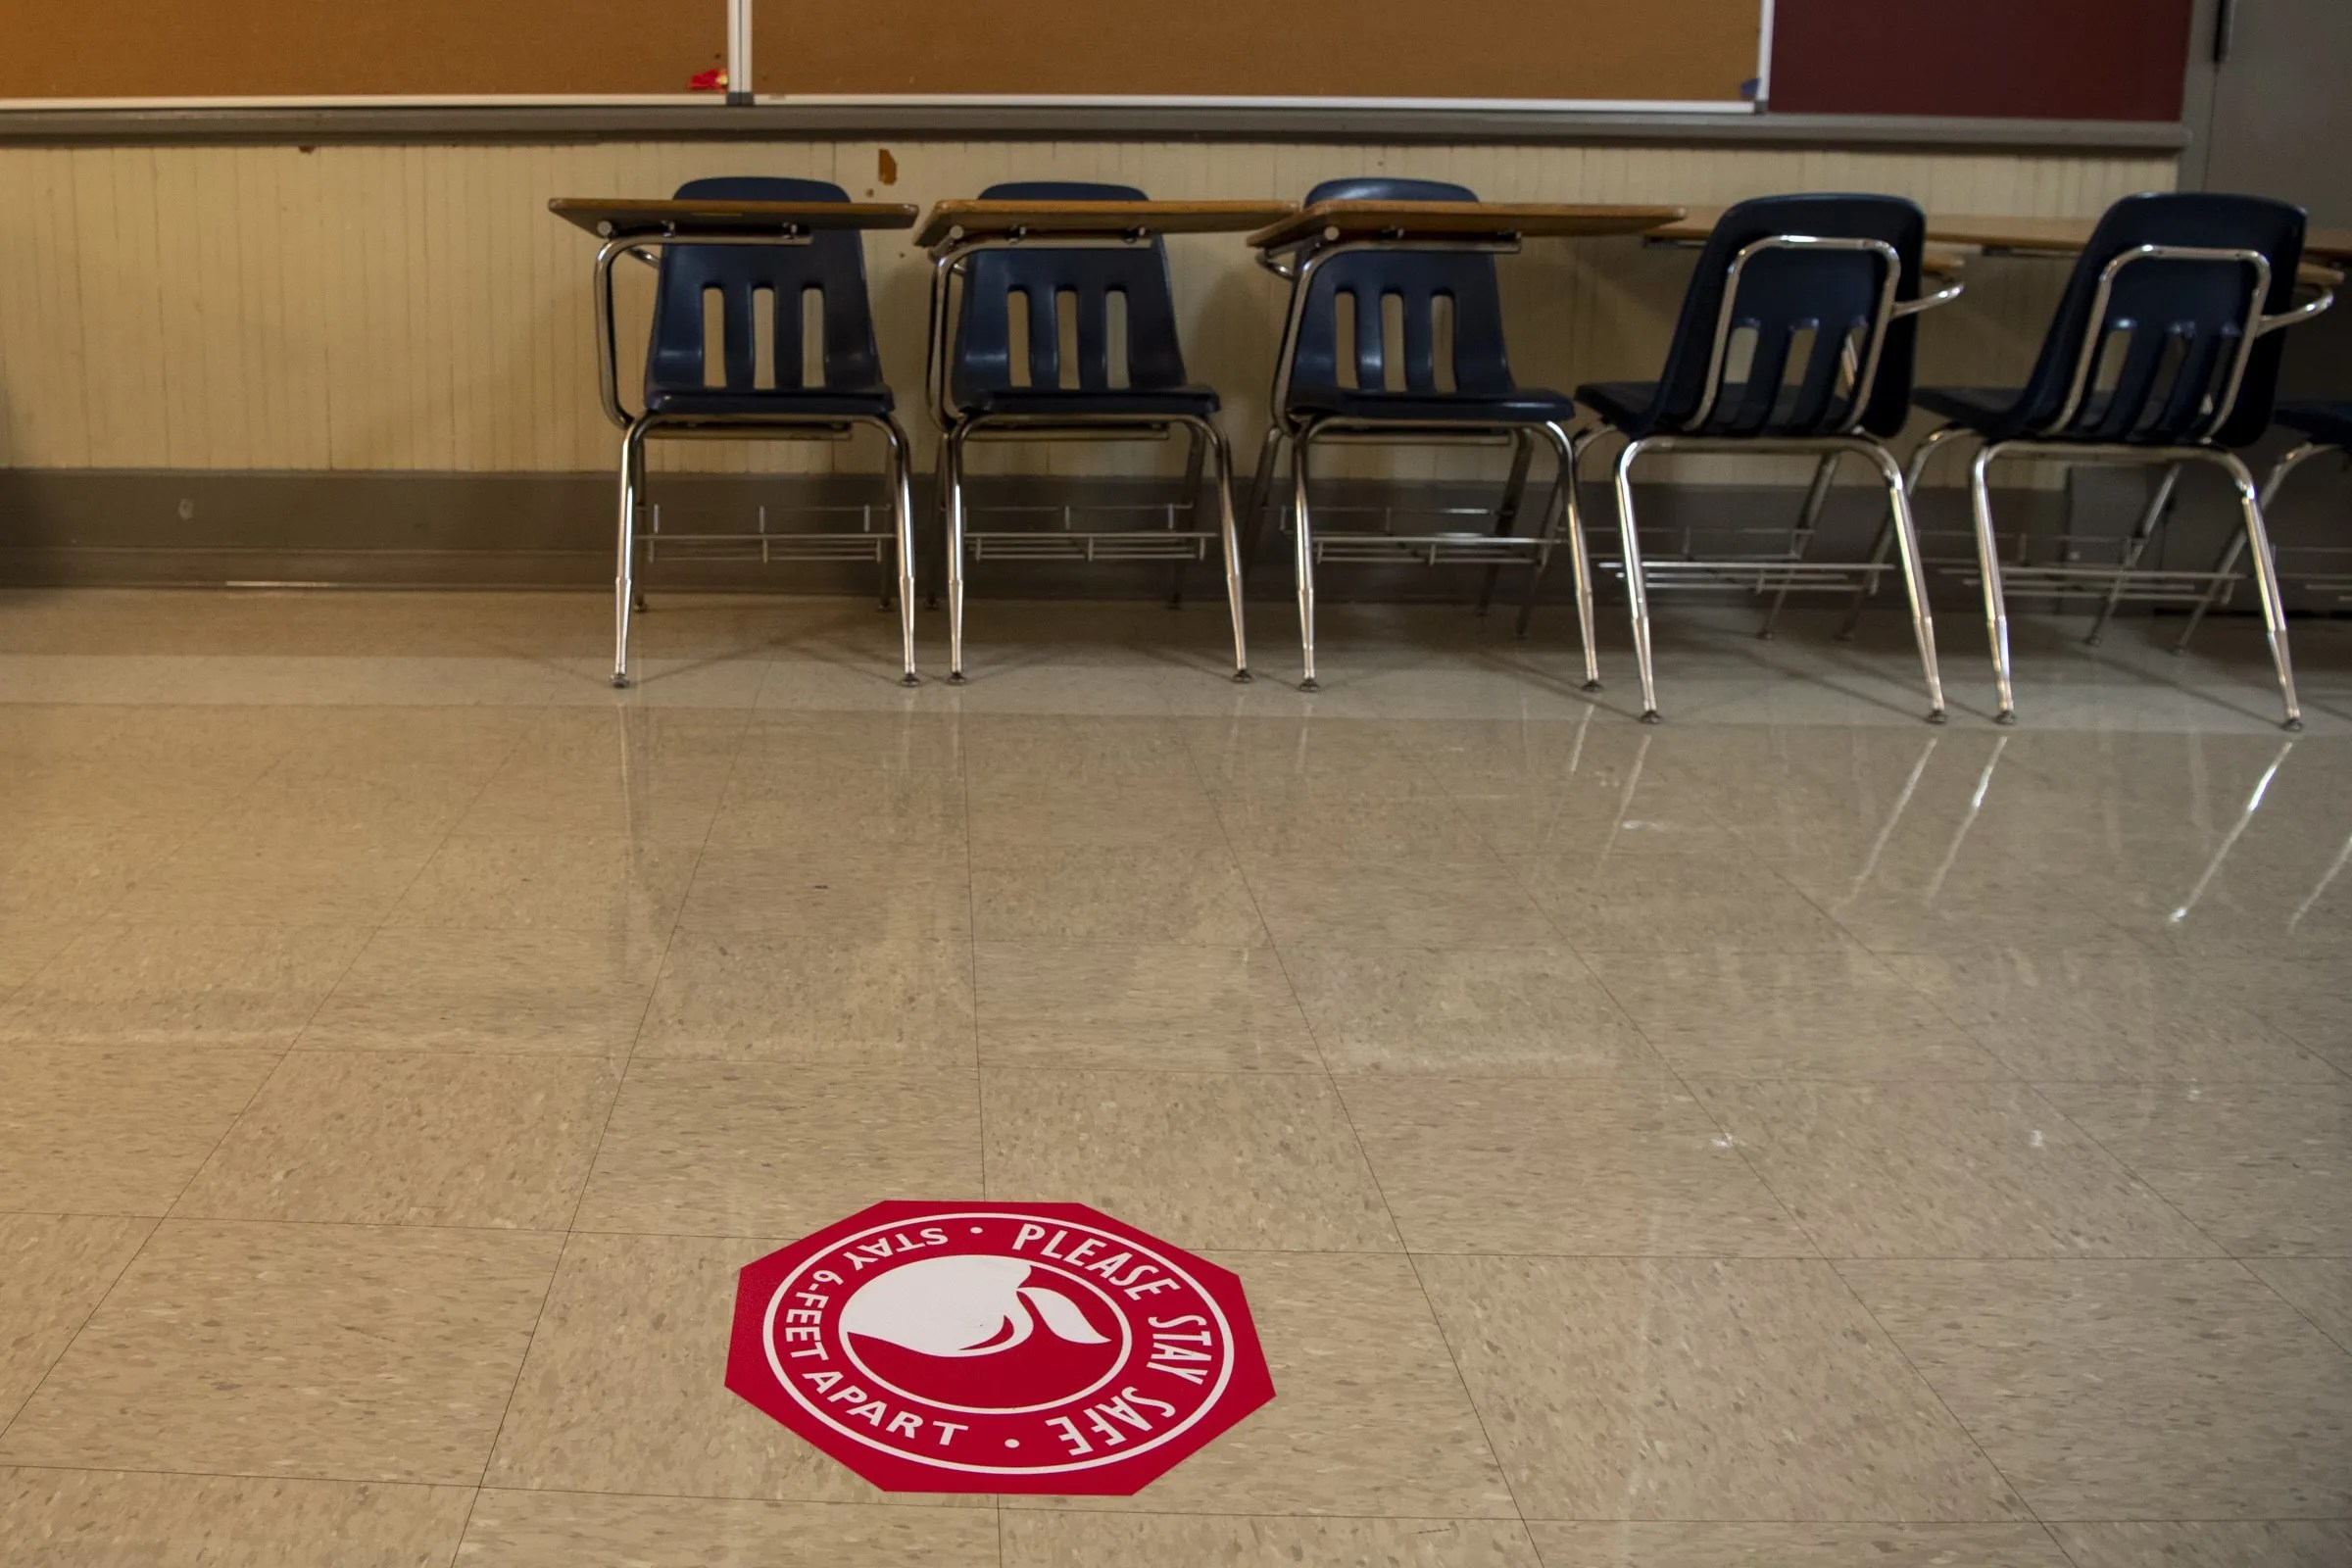 Columbus to reopen schools to some students Feb. 1, but union wants COVID vaccines first